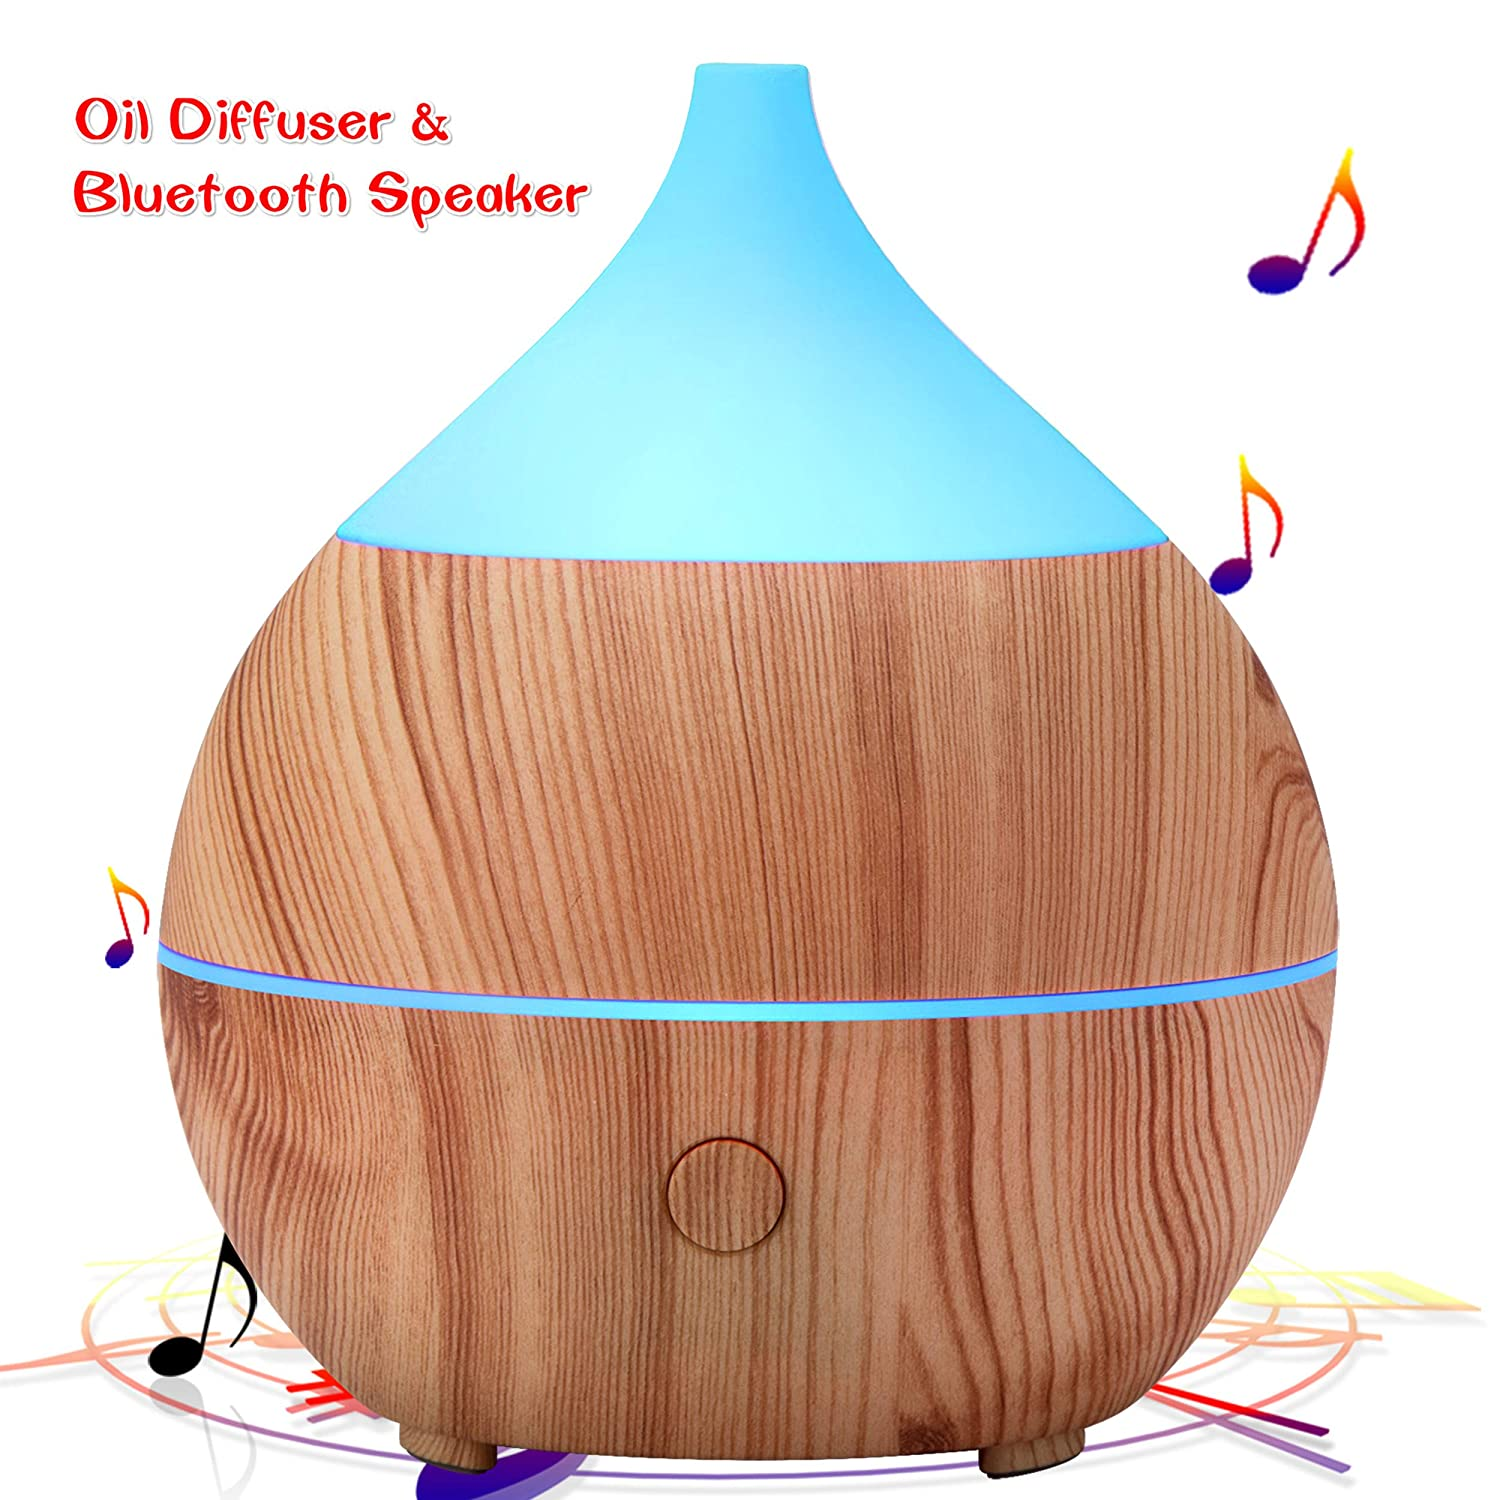 PriBuy Aromatherapy Essential Oil Diffuser with Bluetooth Speaker, Cool Mist Ultrasonic Humidifier, 7 Color LED Lights, Waterless Auto Shut-off, 200mL Diffuser for Office/Home/Bedroom/Baby Room/Yoga Spa. PRIBUY DIFFUSER